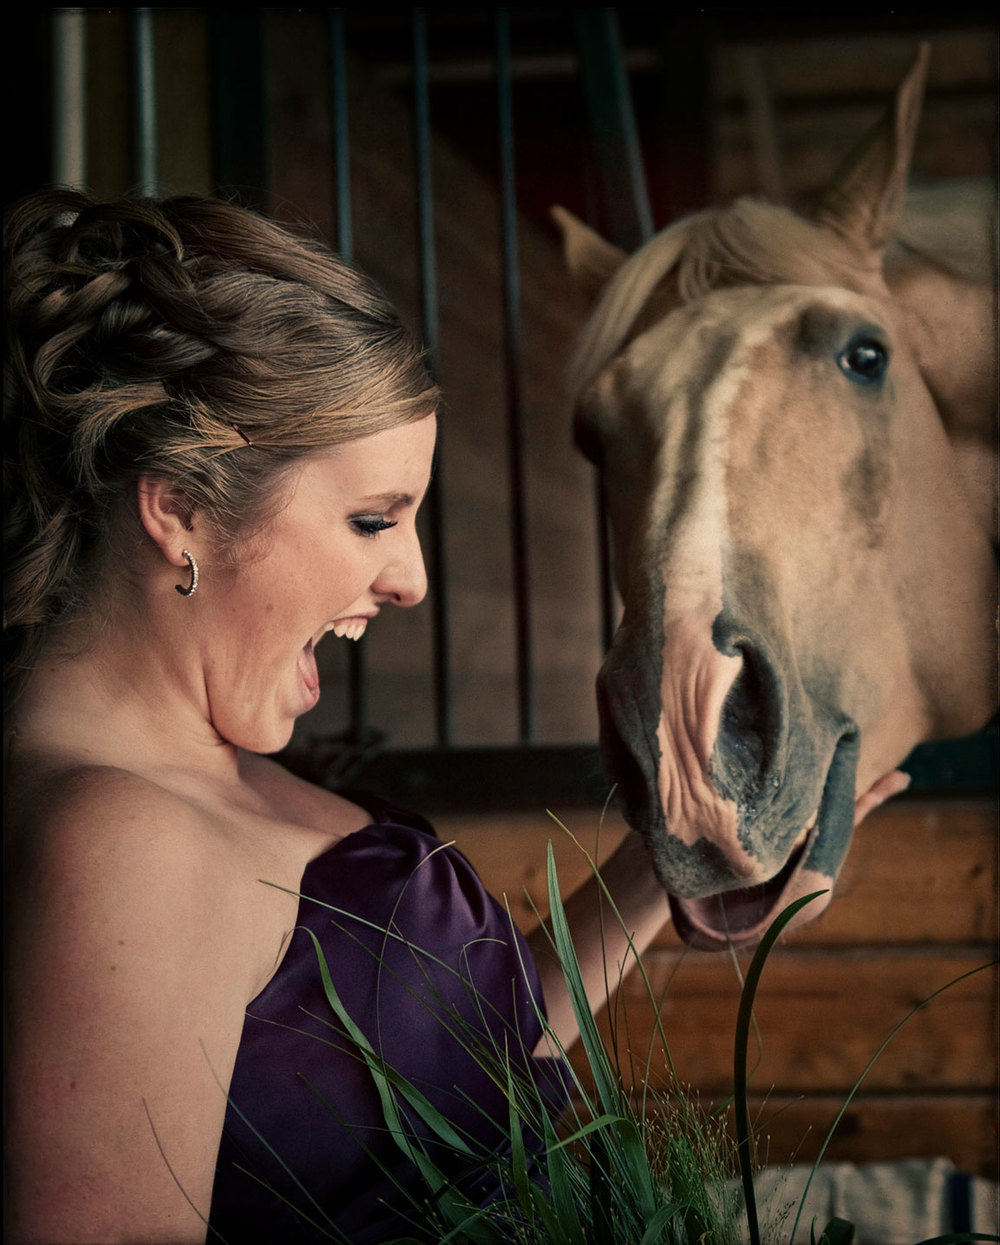 Best-in-Class Award for Wedding Photojournalism, Professional Photographers of Canada BC, 2011